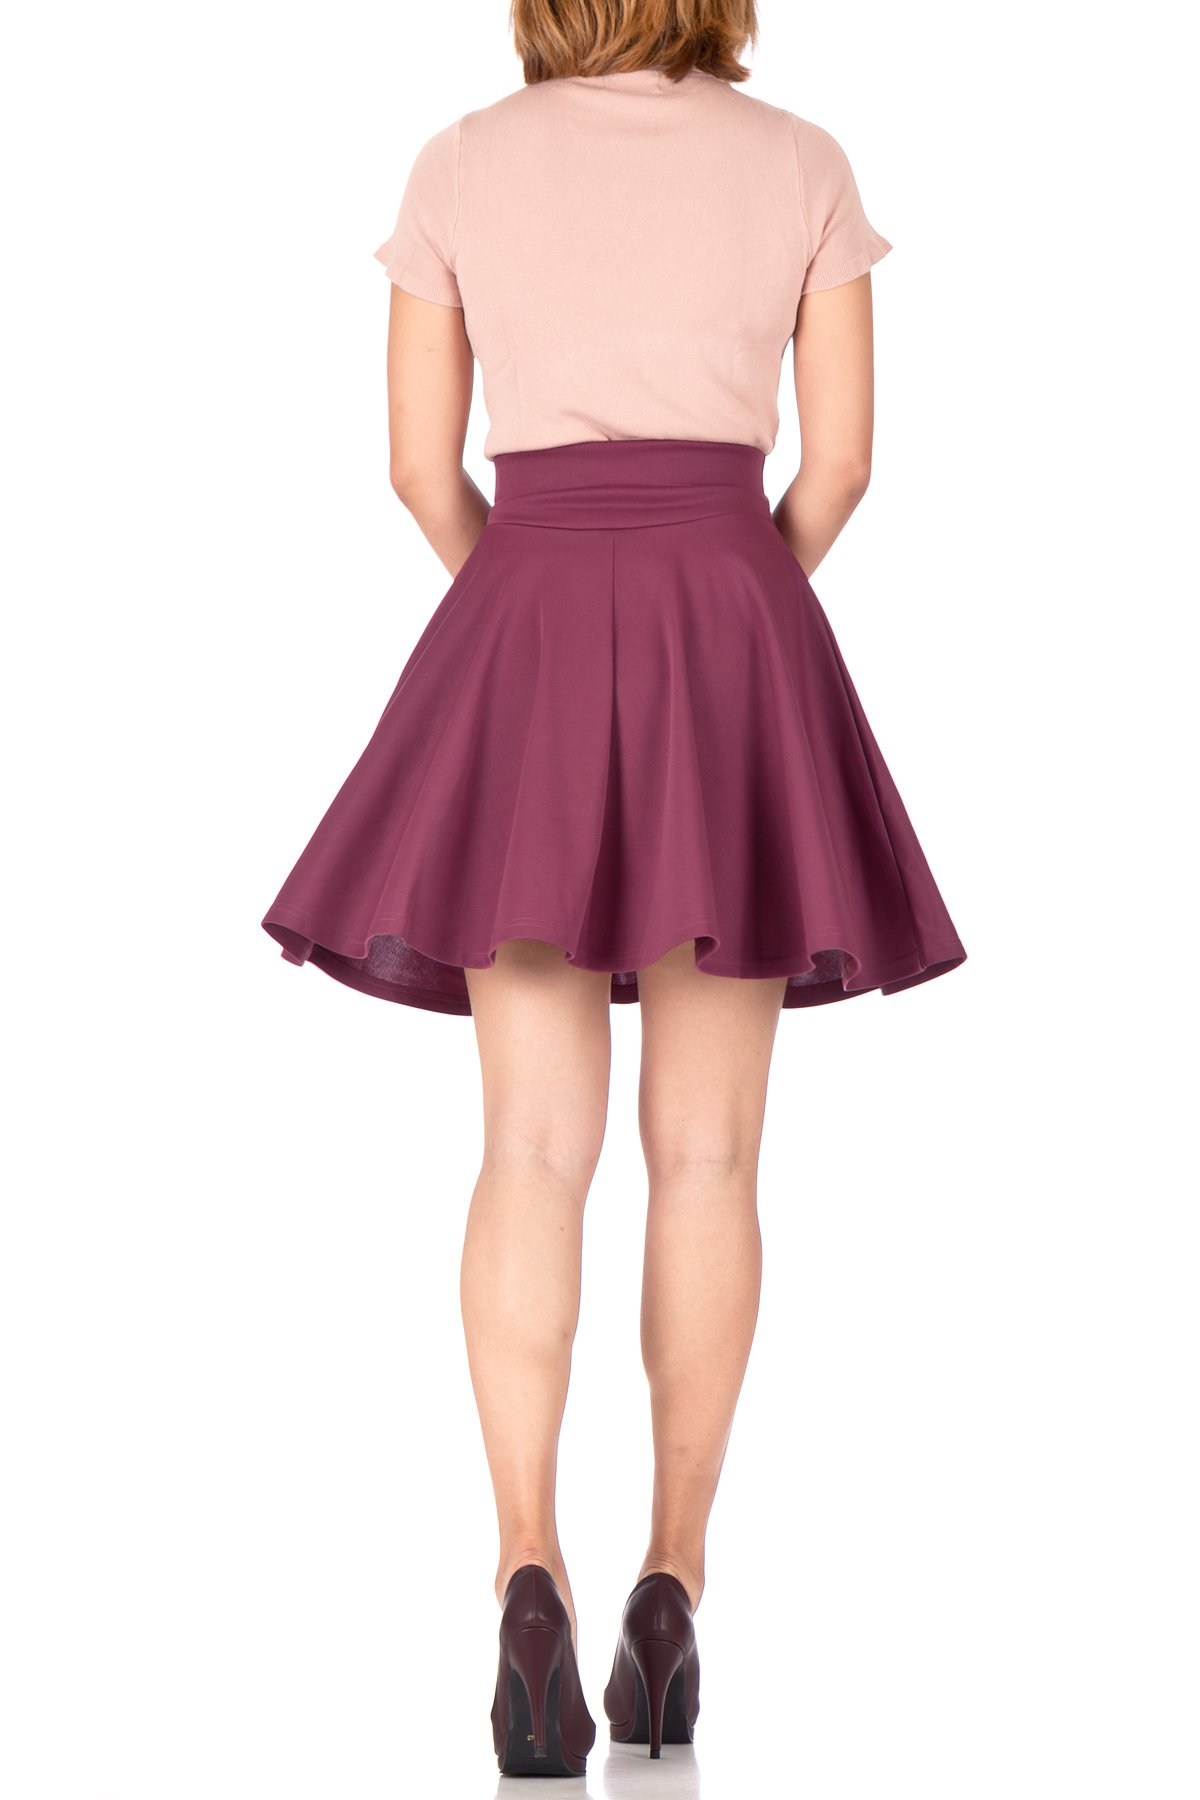 Breathtaking High Waist A line Circle Full Flared Skater Mini Skirt Hibiscus 05